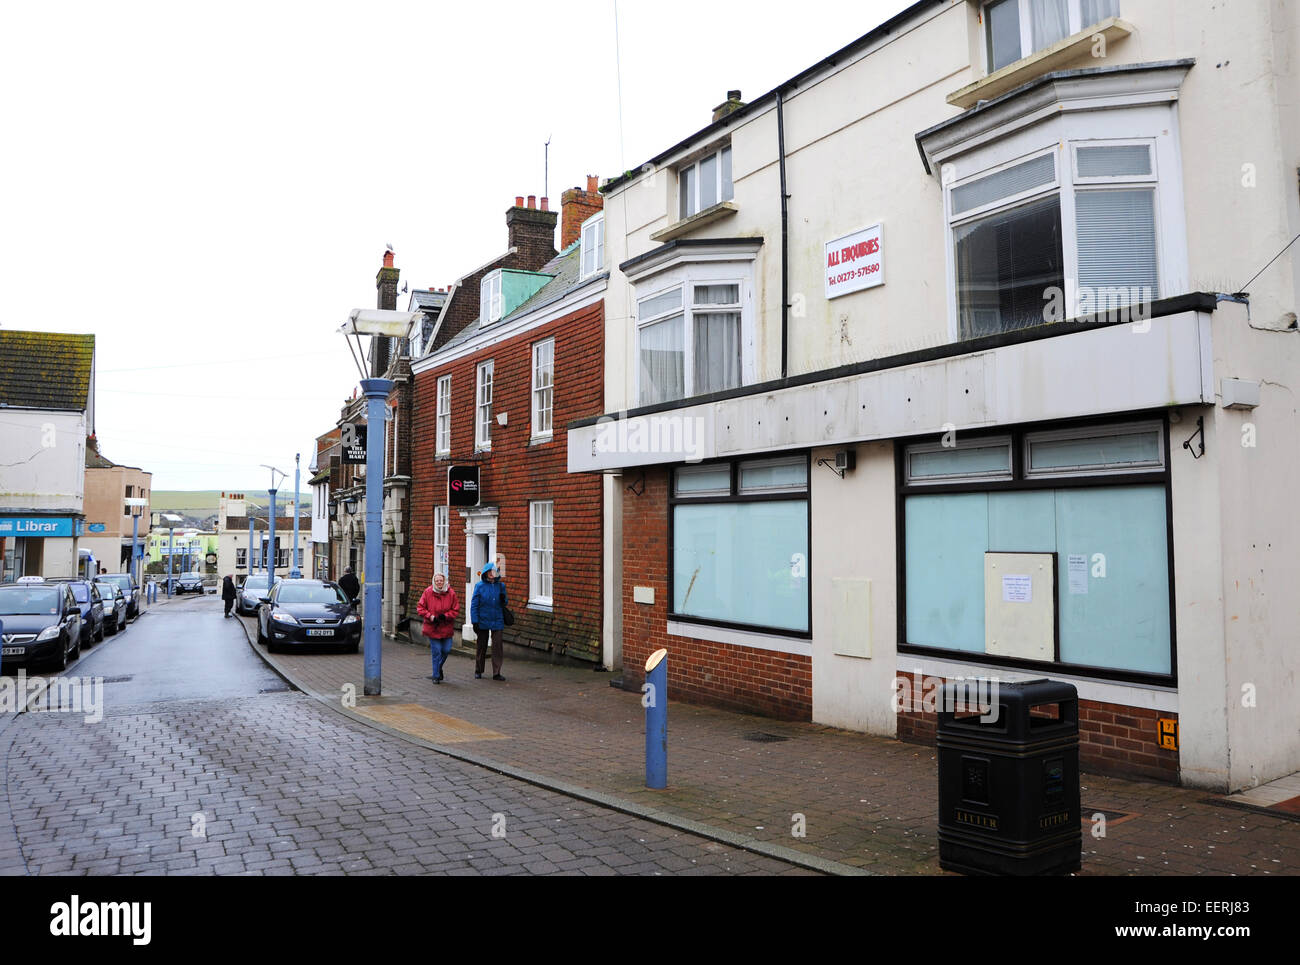 Newhaven East Sussex UK 16th January 2015 - The run down High Street Shopping area - Stock Image